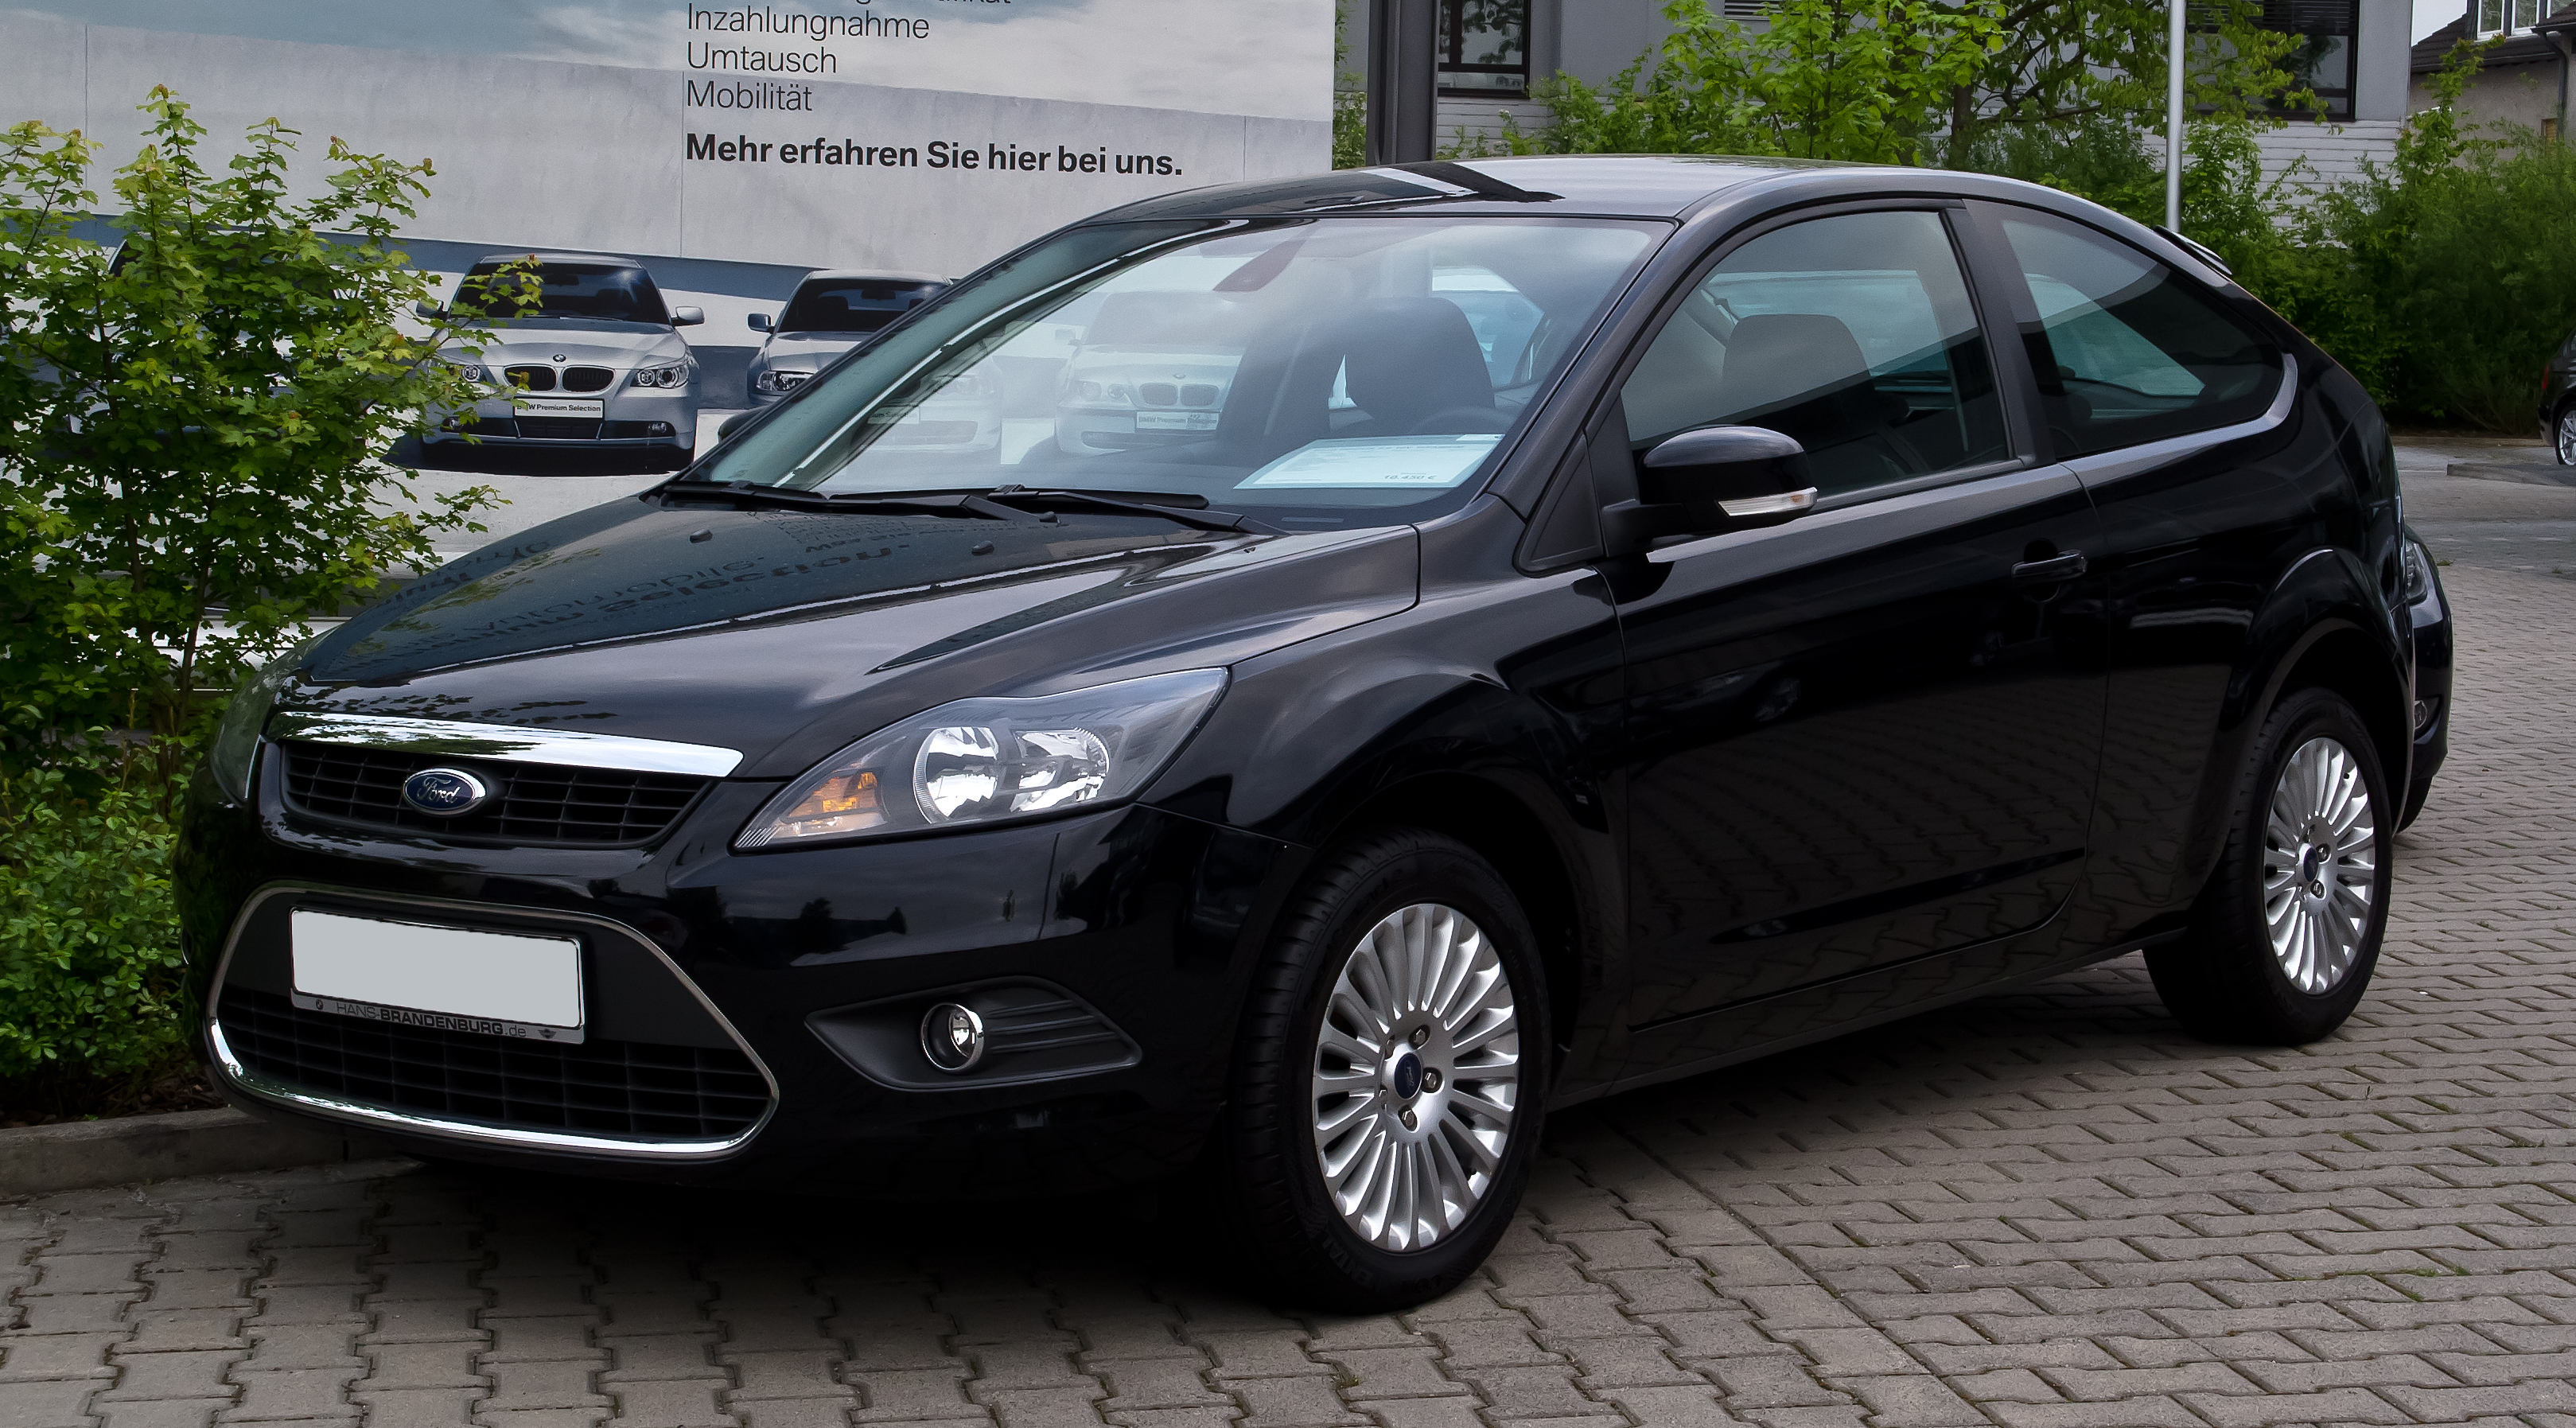 file ford focus 2 0 titanium ii facelift frontansicht 18 mai 2012. Black Bedroom Furniture Sets. Home Design Ideas